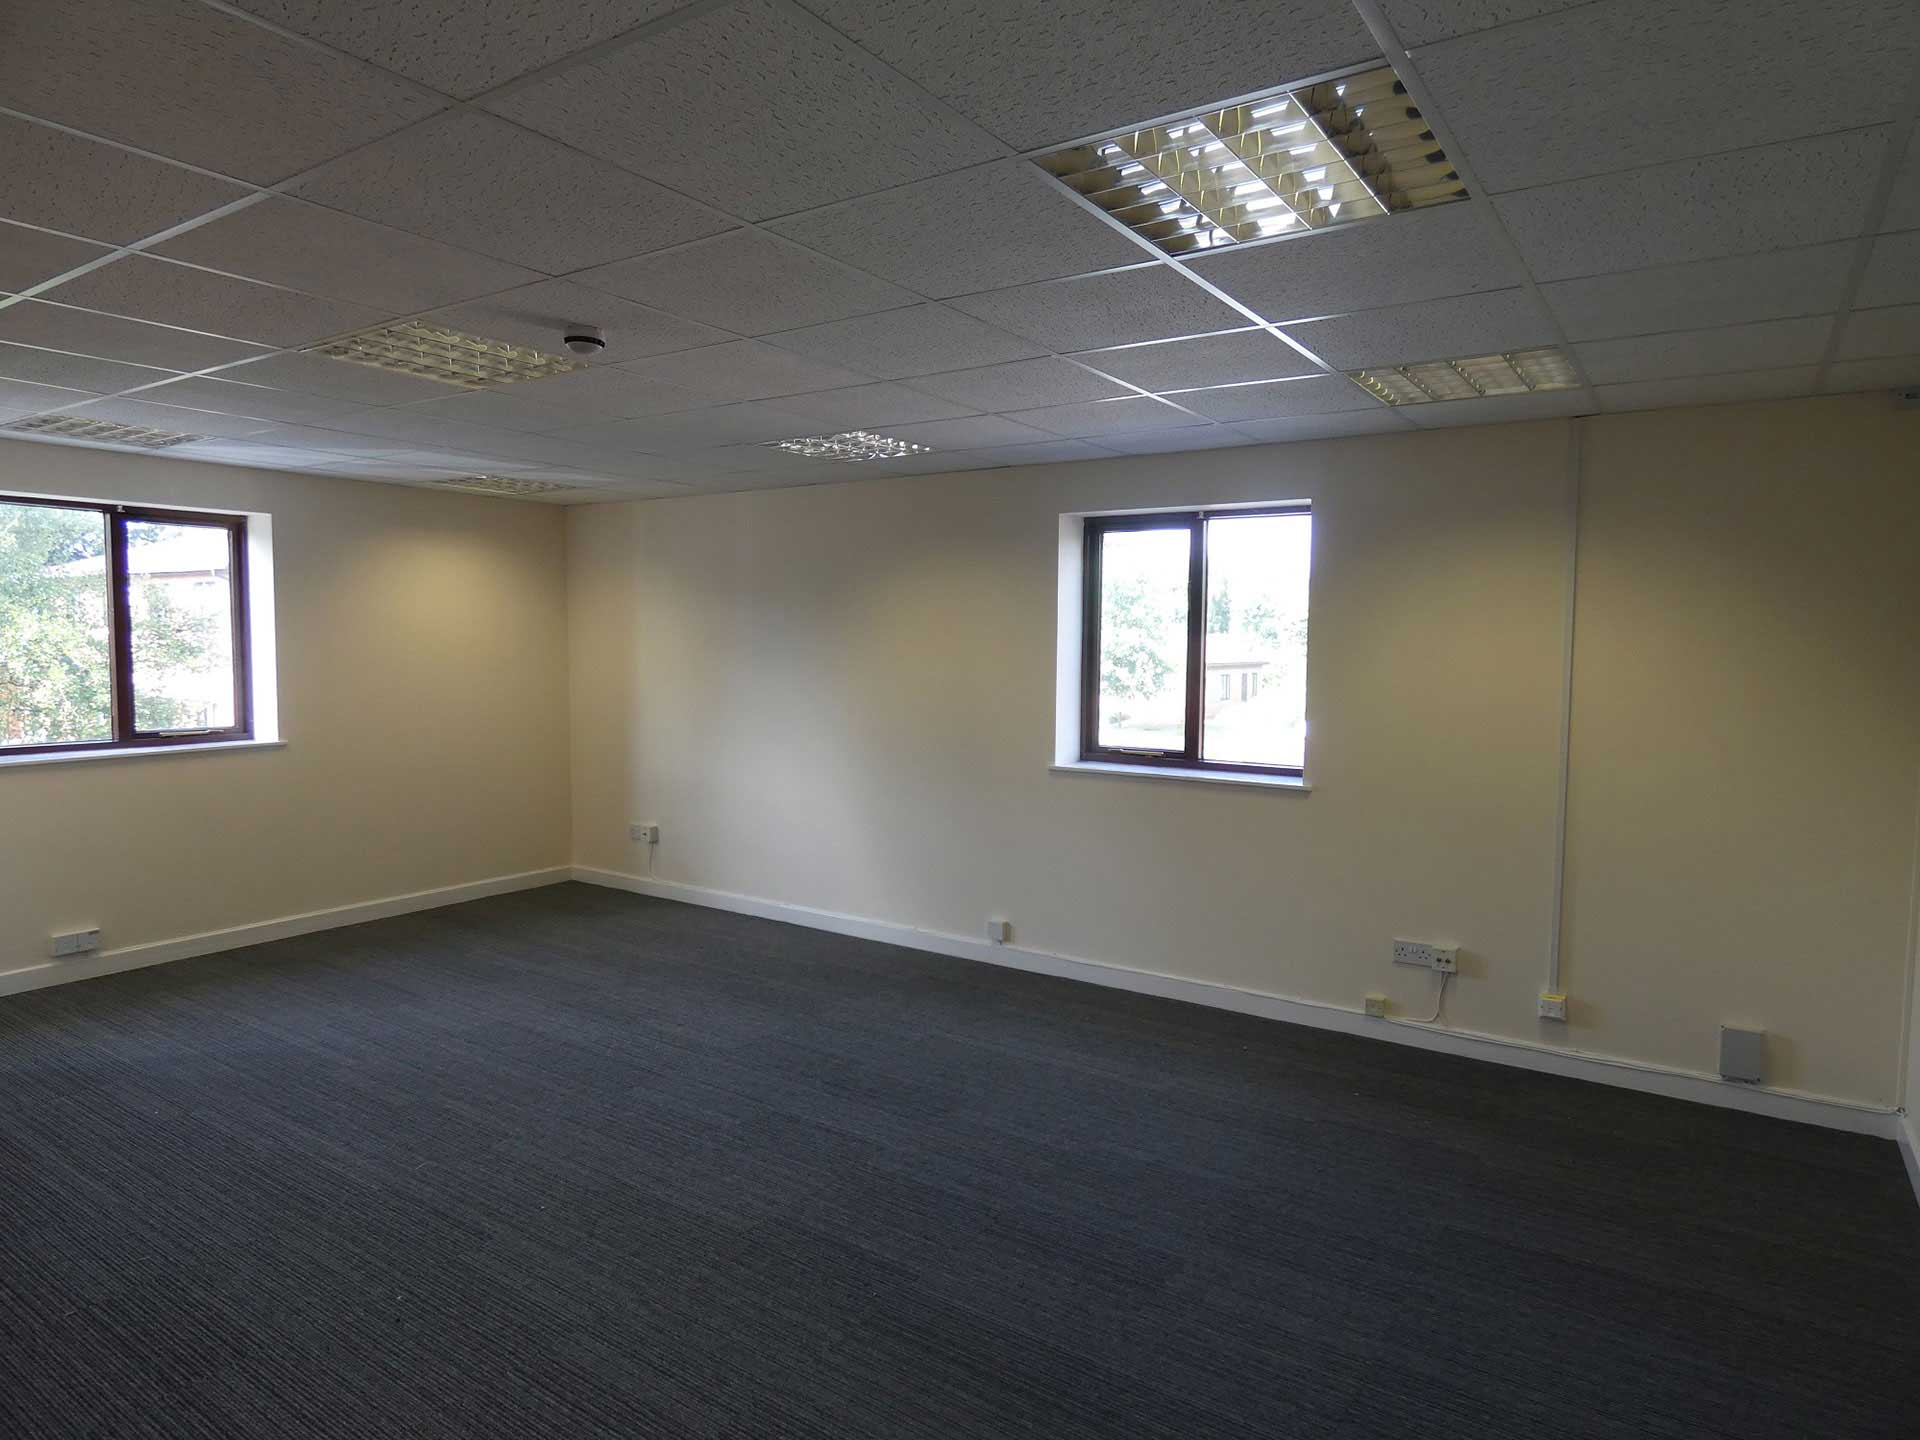 Maple House (C) - Kingswood Business Park, Holyhead Road, Wolverhampton, Staffordshire, WV7 3AU